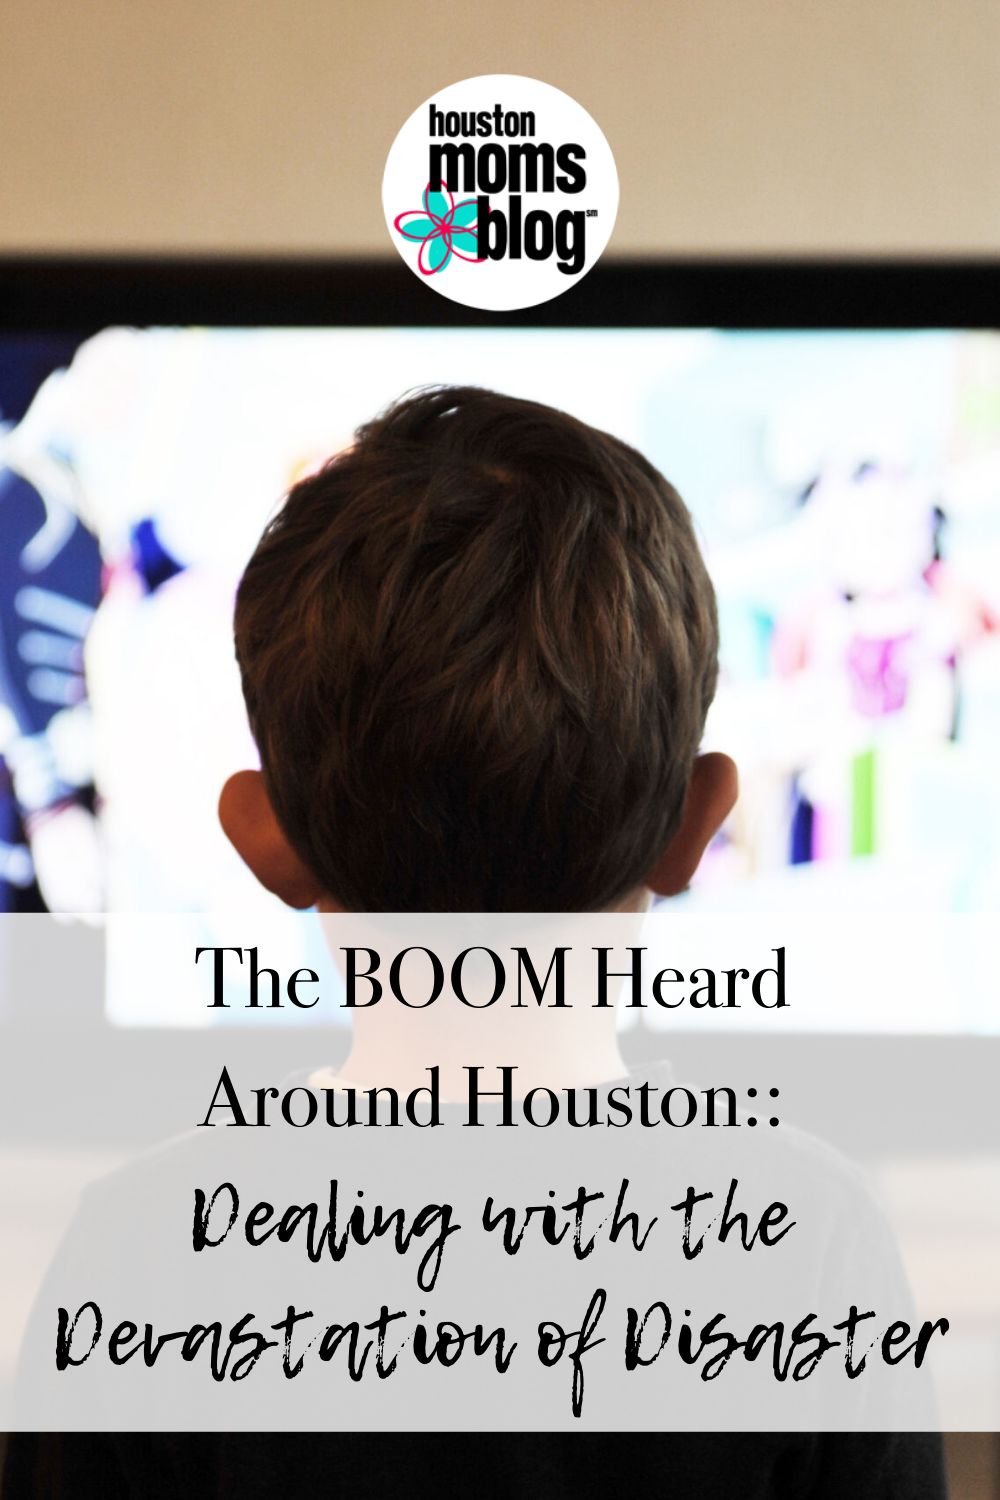 "Houston Moms Blog ""The BOOM Heard Around Houston:: Dealing with the Devastation of Disaster"" #houstonmomsblog #momsaroundhouston"